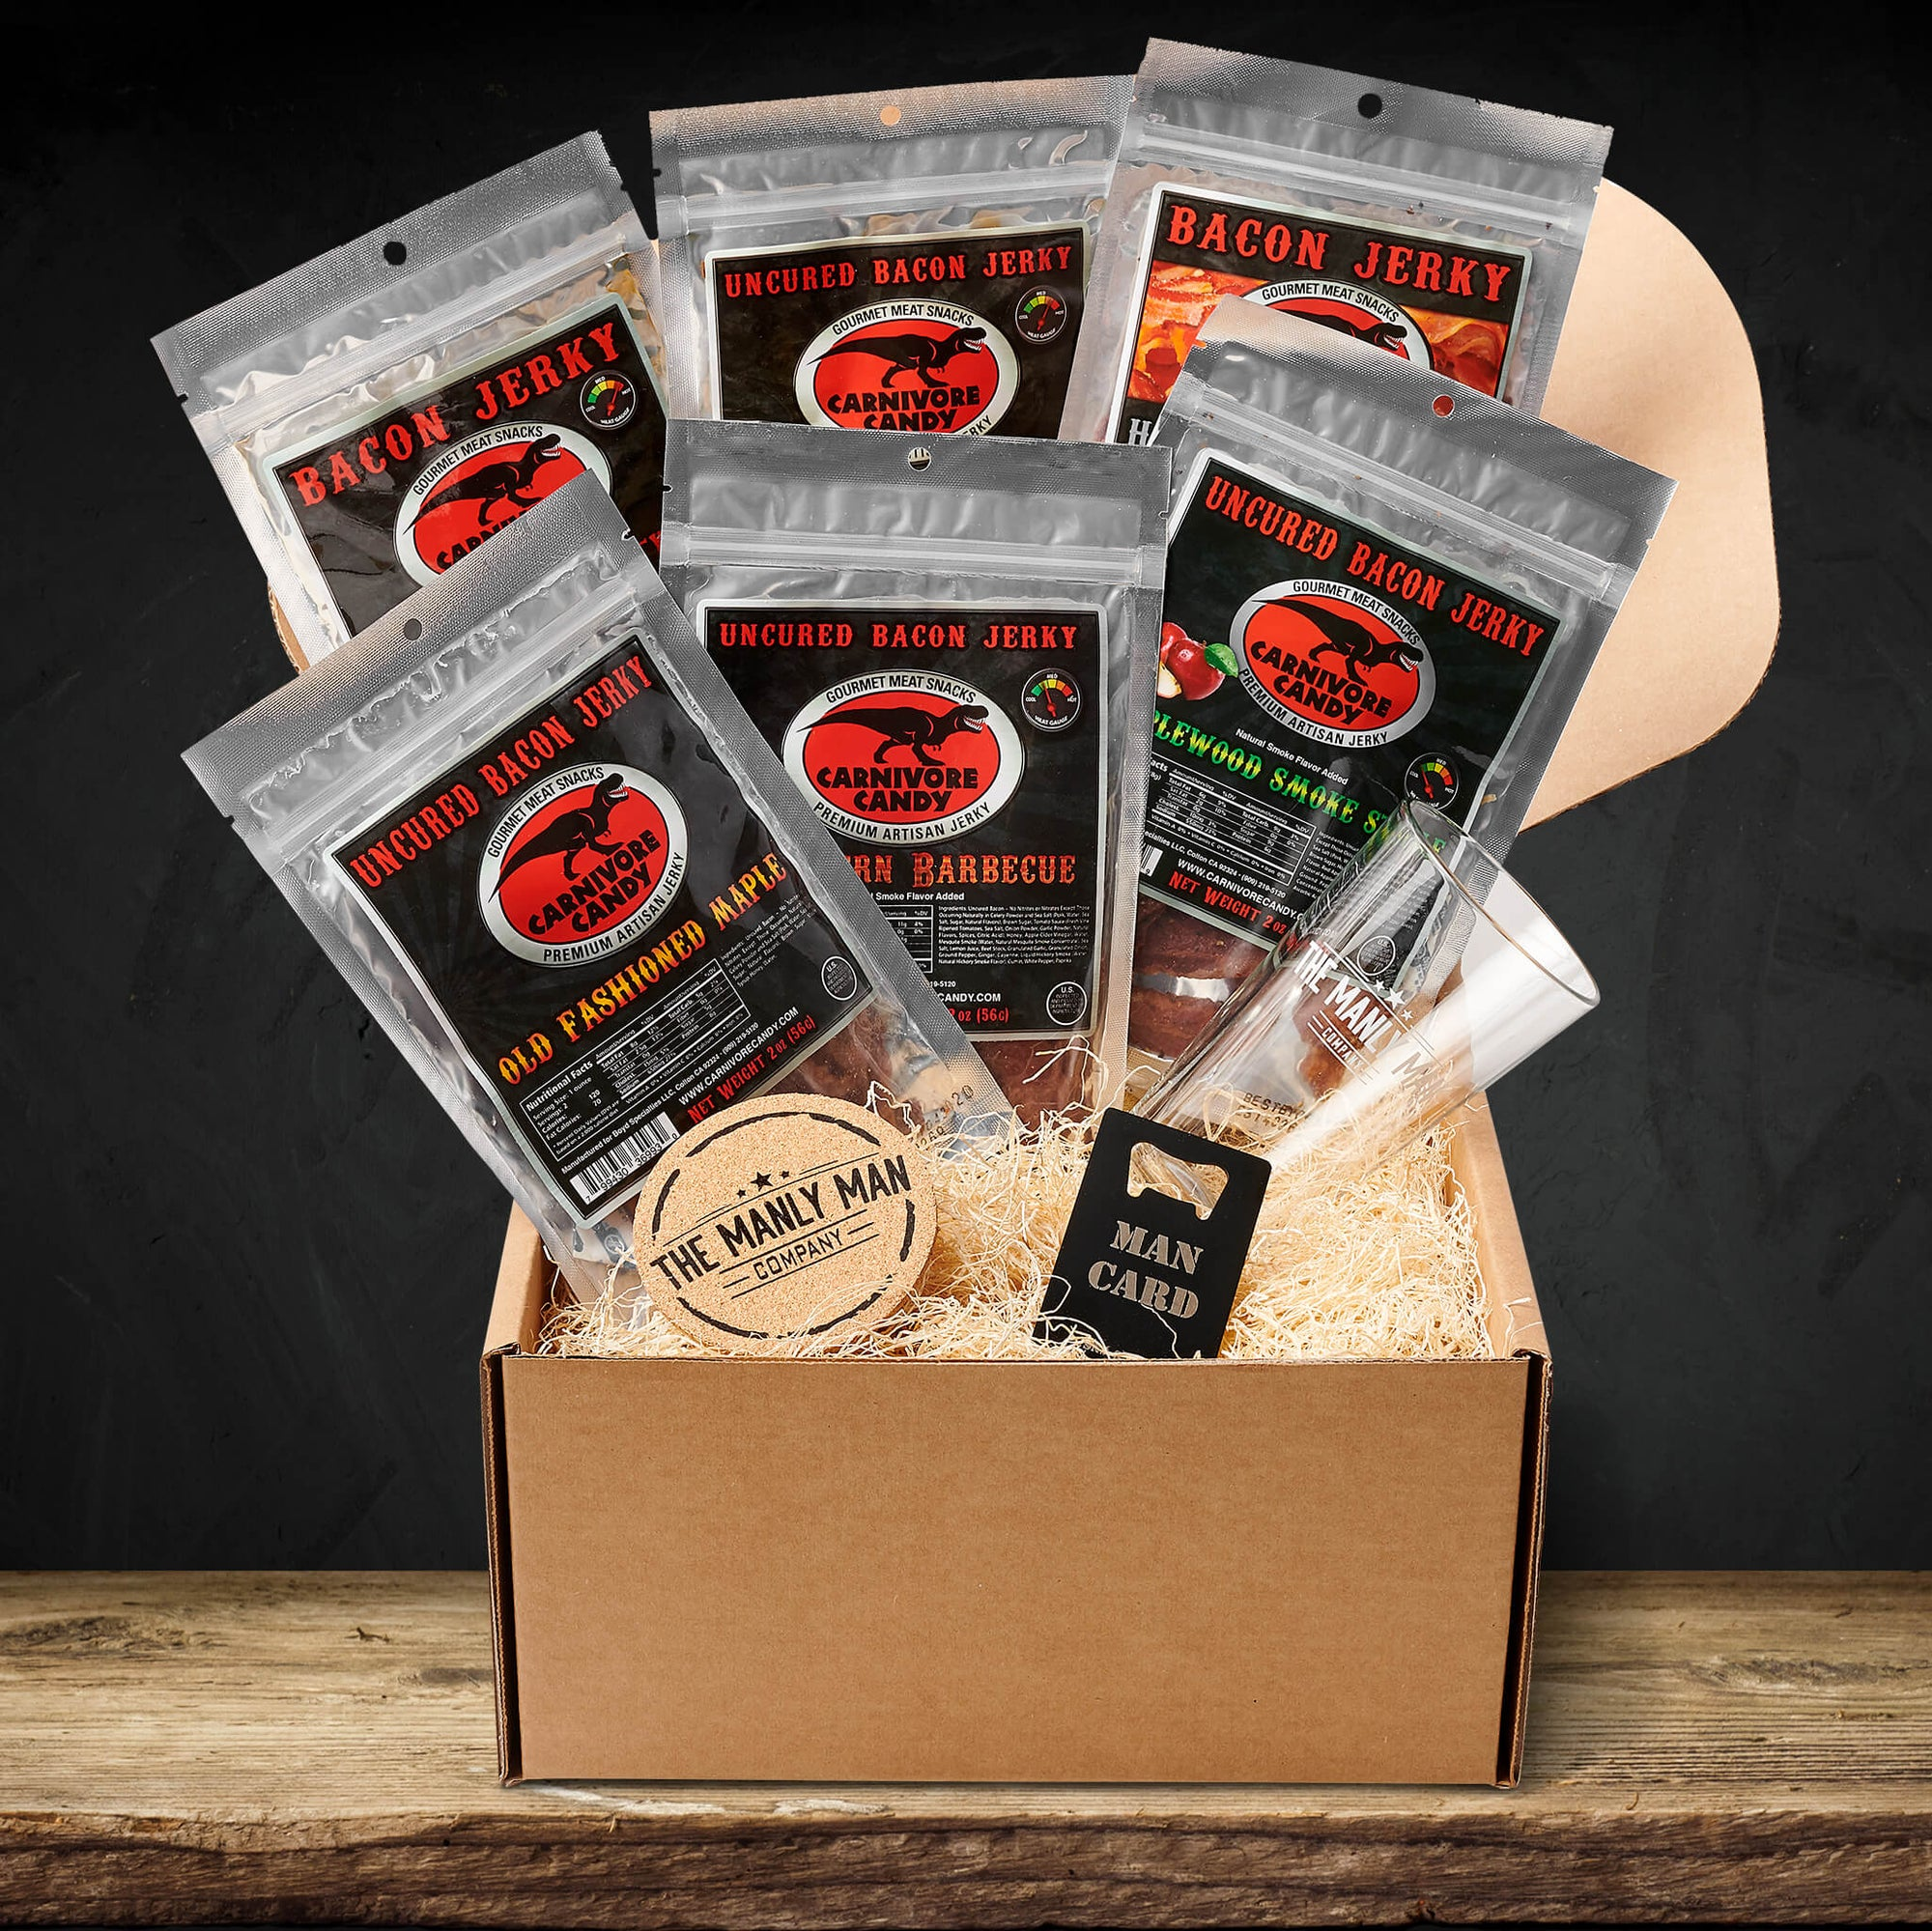 This gift box comes with a variety of bacon jerky flavors, a coaster, a bottle opener and a pint glass.